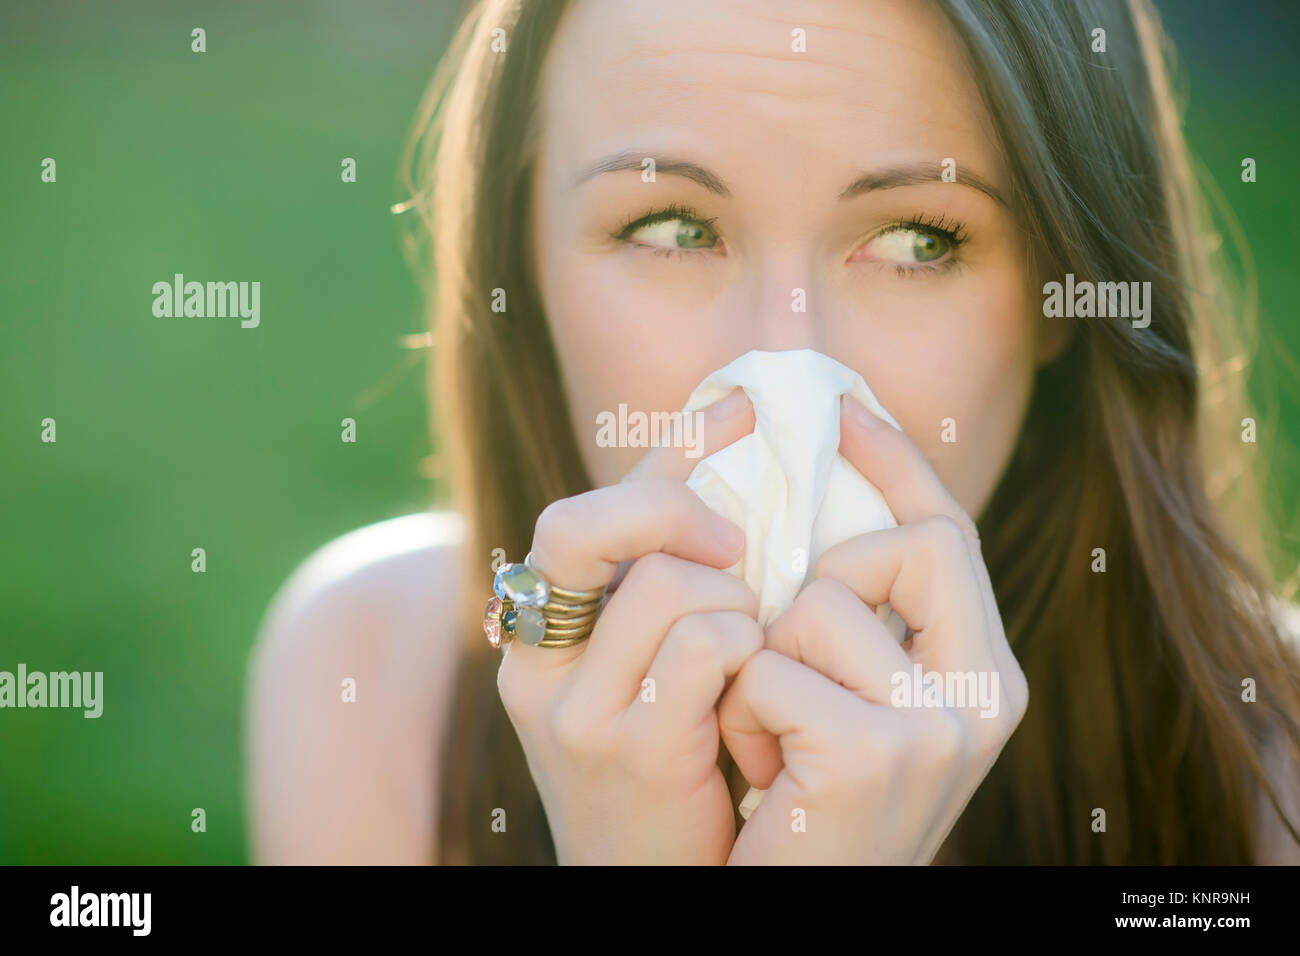 Junge Frau mit Pollenallergie - woman with pollen allergy in spring Stock Photo